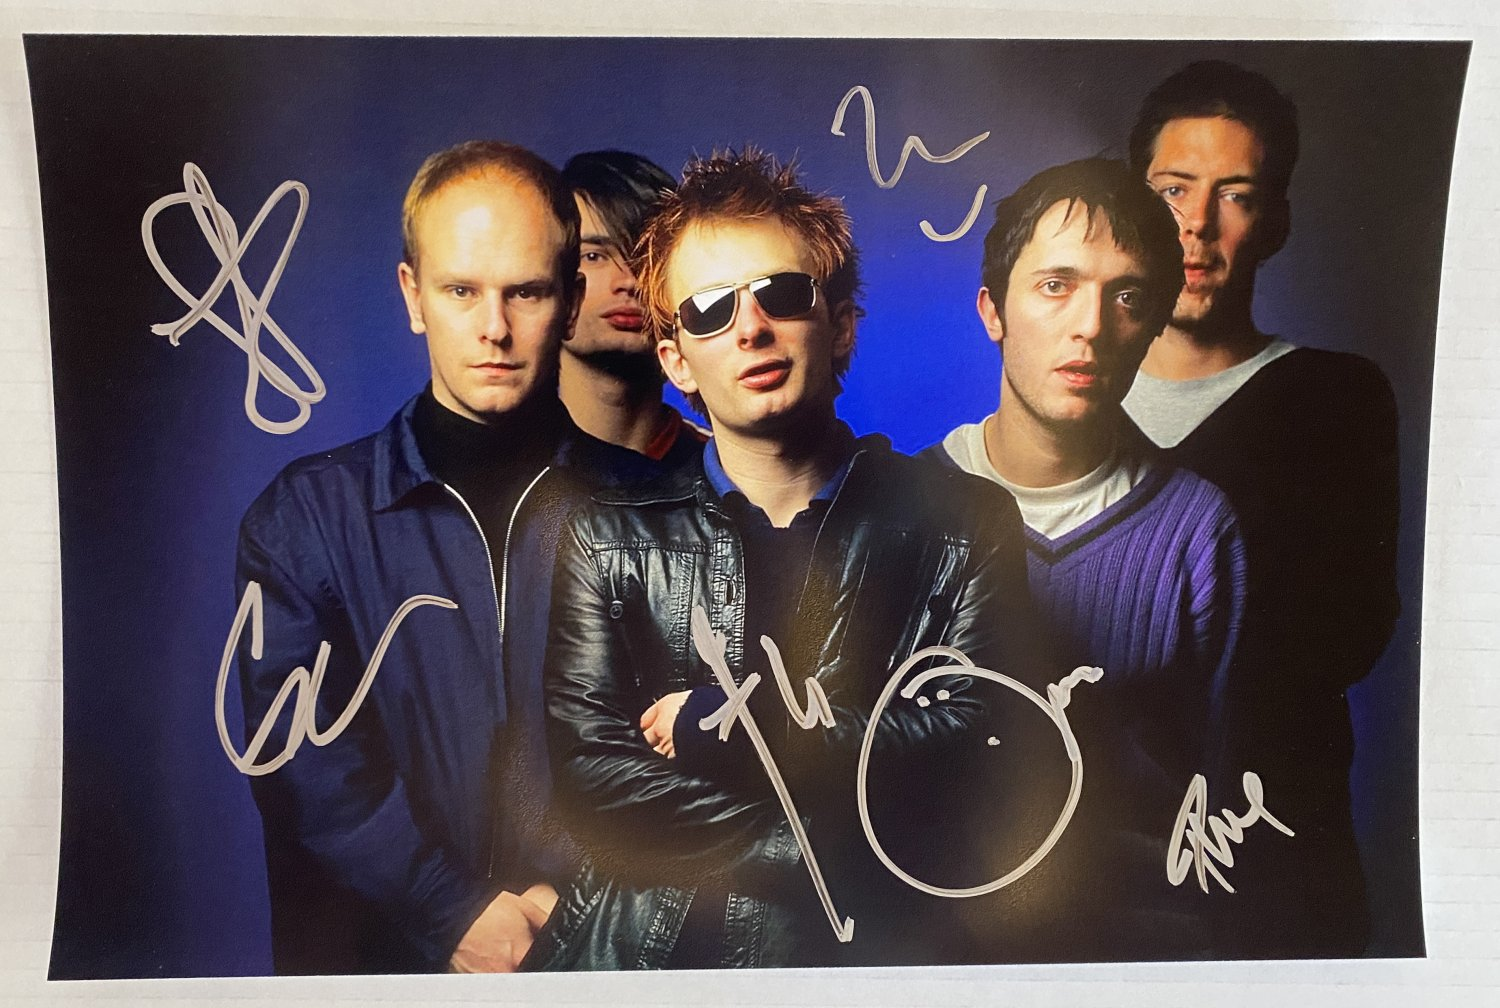 Radiohead band signed autographed 8x12 photo Thom Yorke autographs